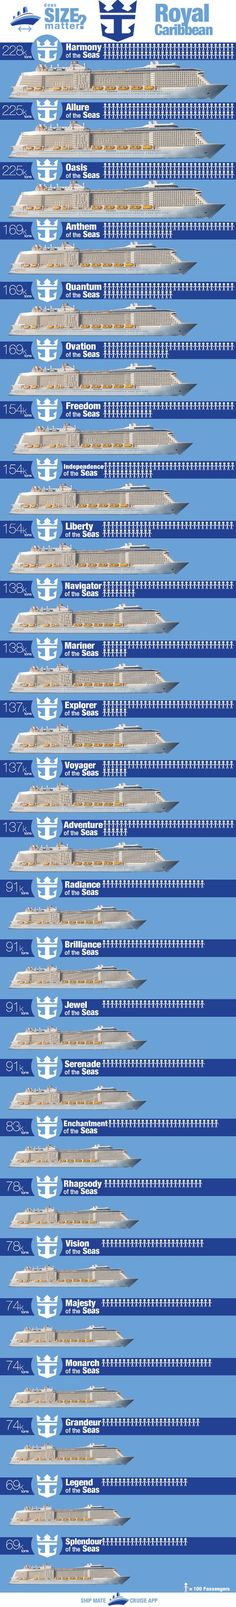 Royal Caribbean Ships by Size - see all 26 RCCL Ships listed from biggest to smallest, including Cost, Passenger Count & more: http://blog.shipmateapp.com/royal-caribbean-ships-by-size/